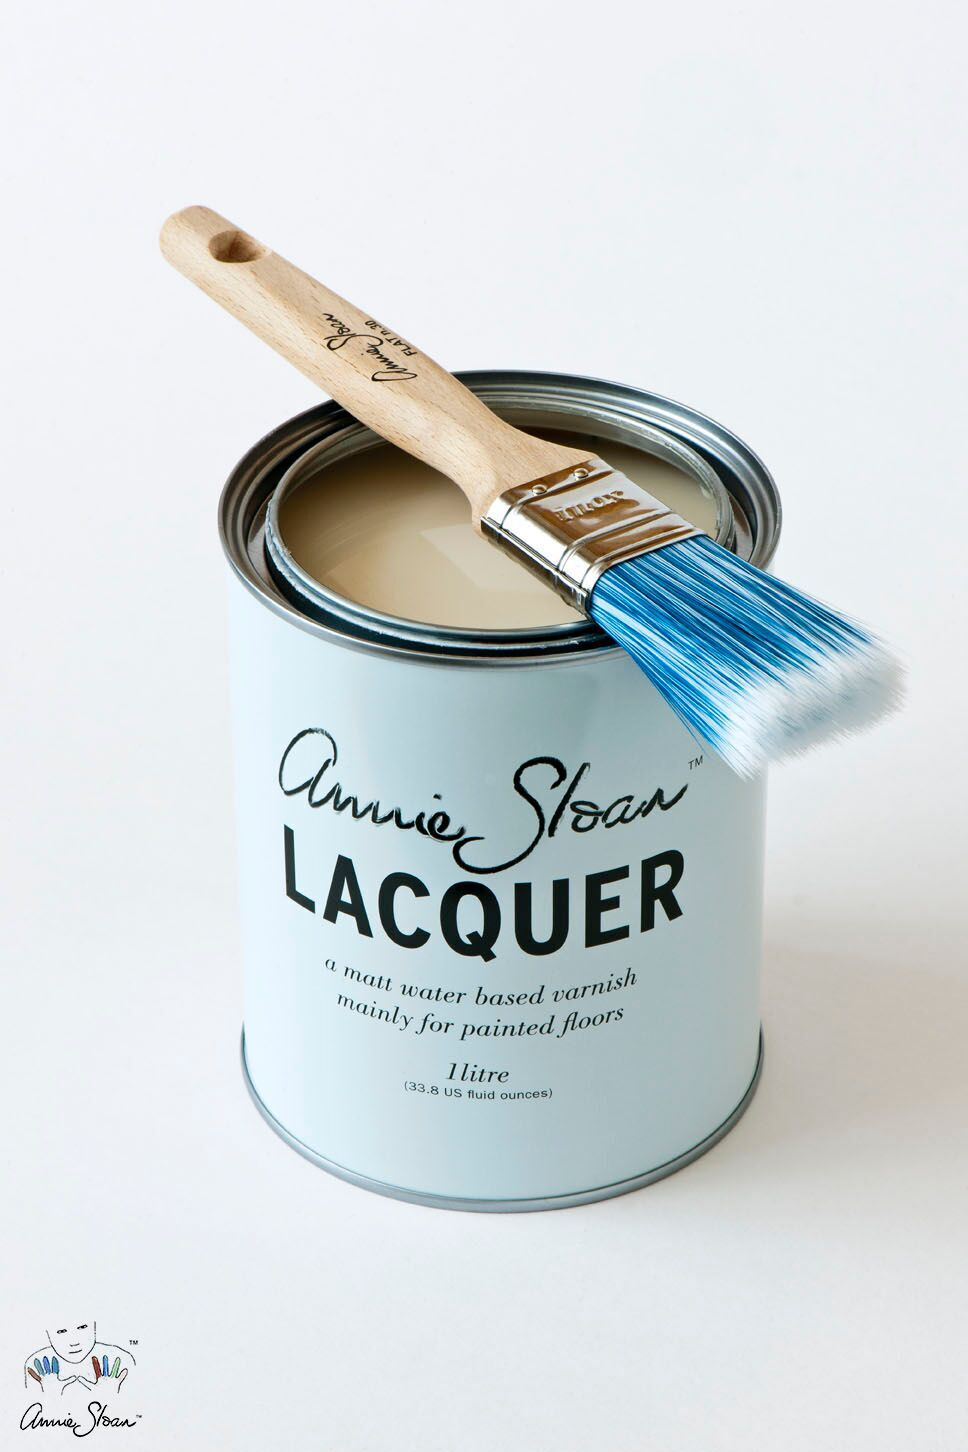 Annie Sloan™ Lacquer - Annie Sloan Lacquer is a strong water-based varnish. It is particularly good on interior wood and concrete floors that have been painted with Chalk Paint®. It is quick drying, non-toxic, non-yellowing, and has very little odor. It is different from other varnishes in that it is a penetrating sealer made to soak into the paint rather than sits on top like other varnishes. When dry, it gives a beautiful matte finish with a slight sheen for added strength.